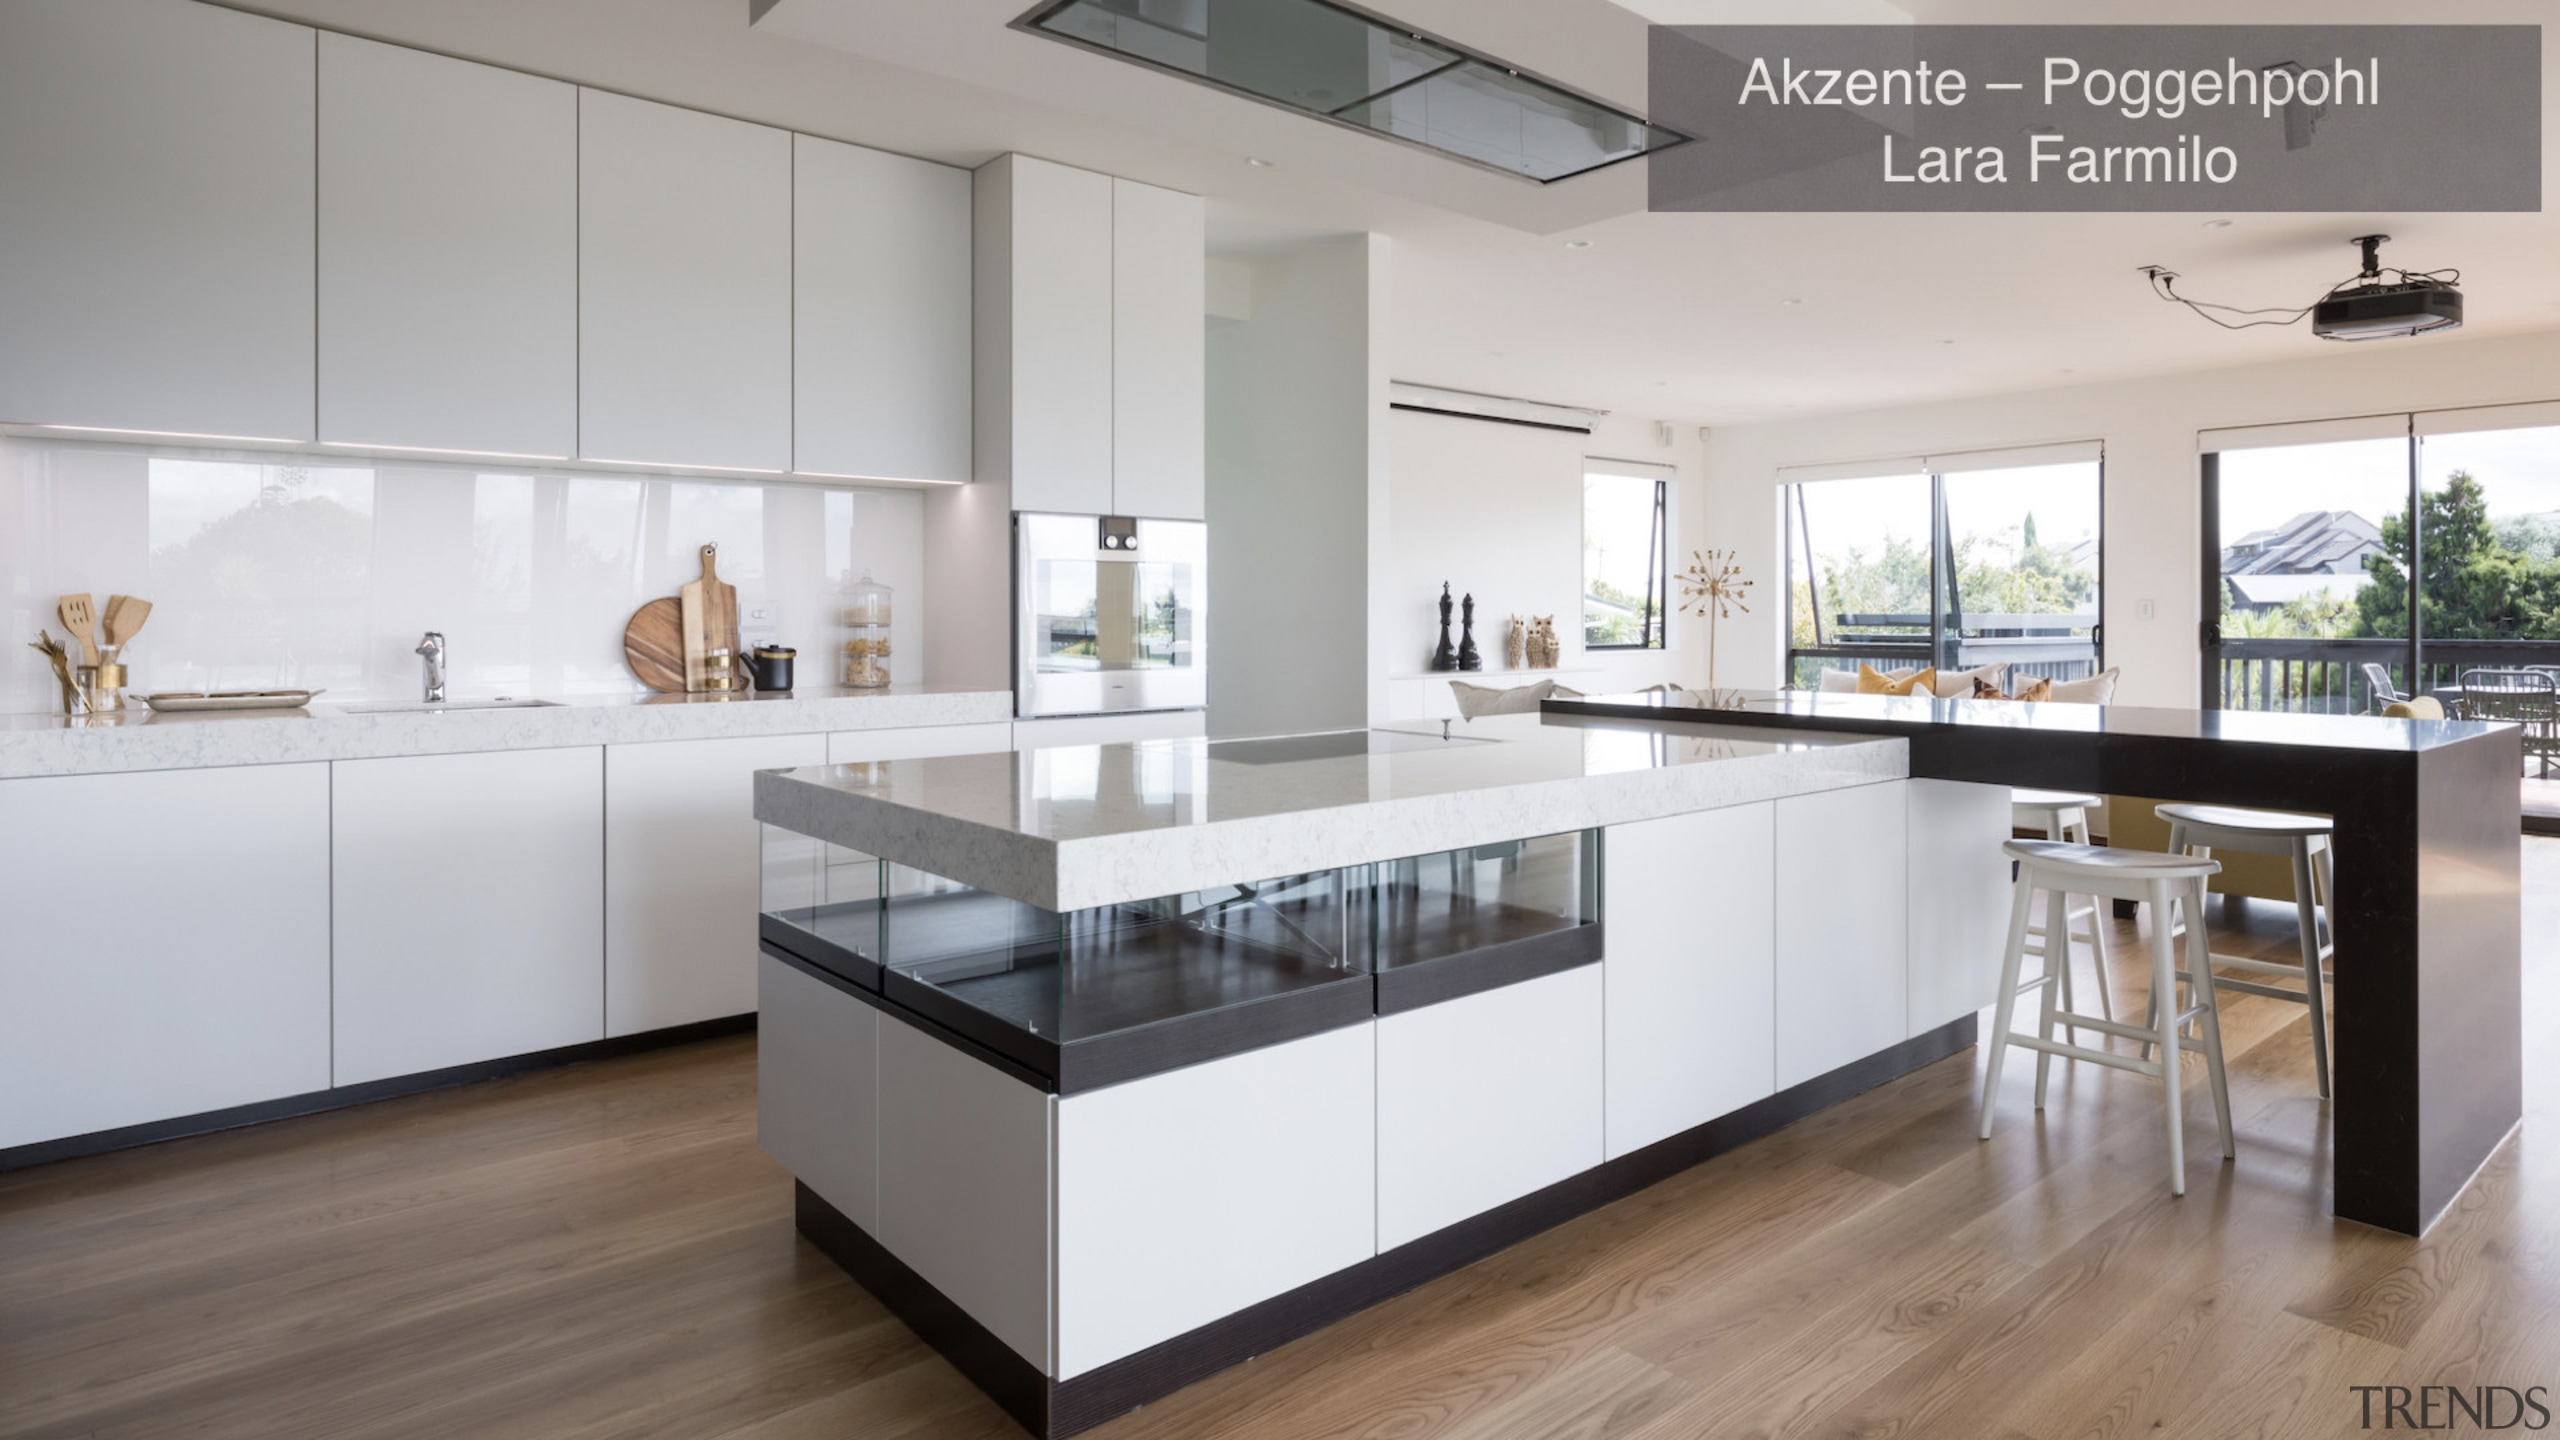 Highly Commended – Akzente/Pggenpohl, Lara Farmilo – TIDA countertop, cuisine classique, floor, interior design, kitchen, gray, white